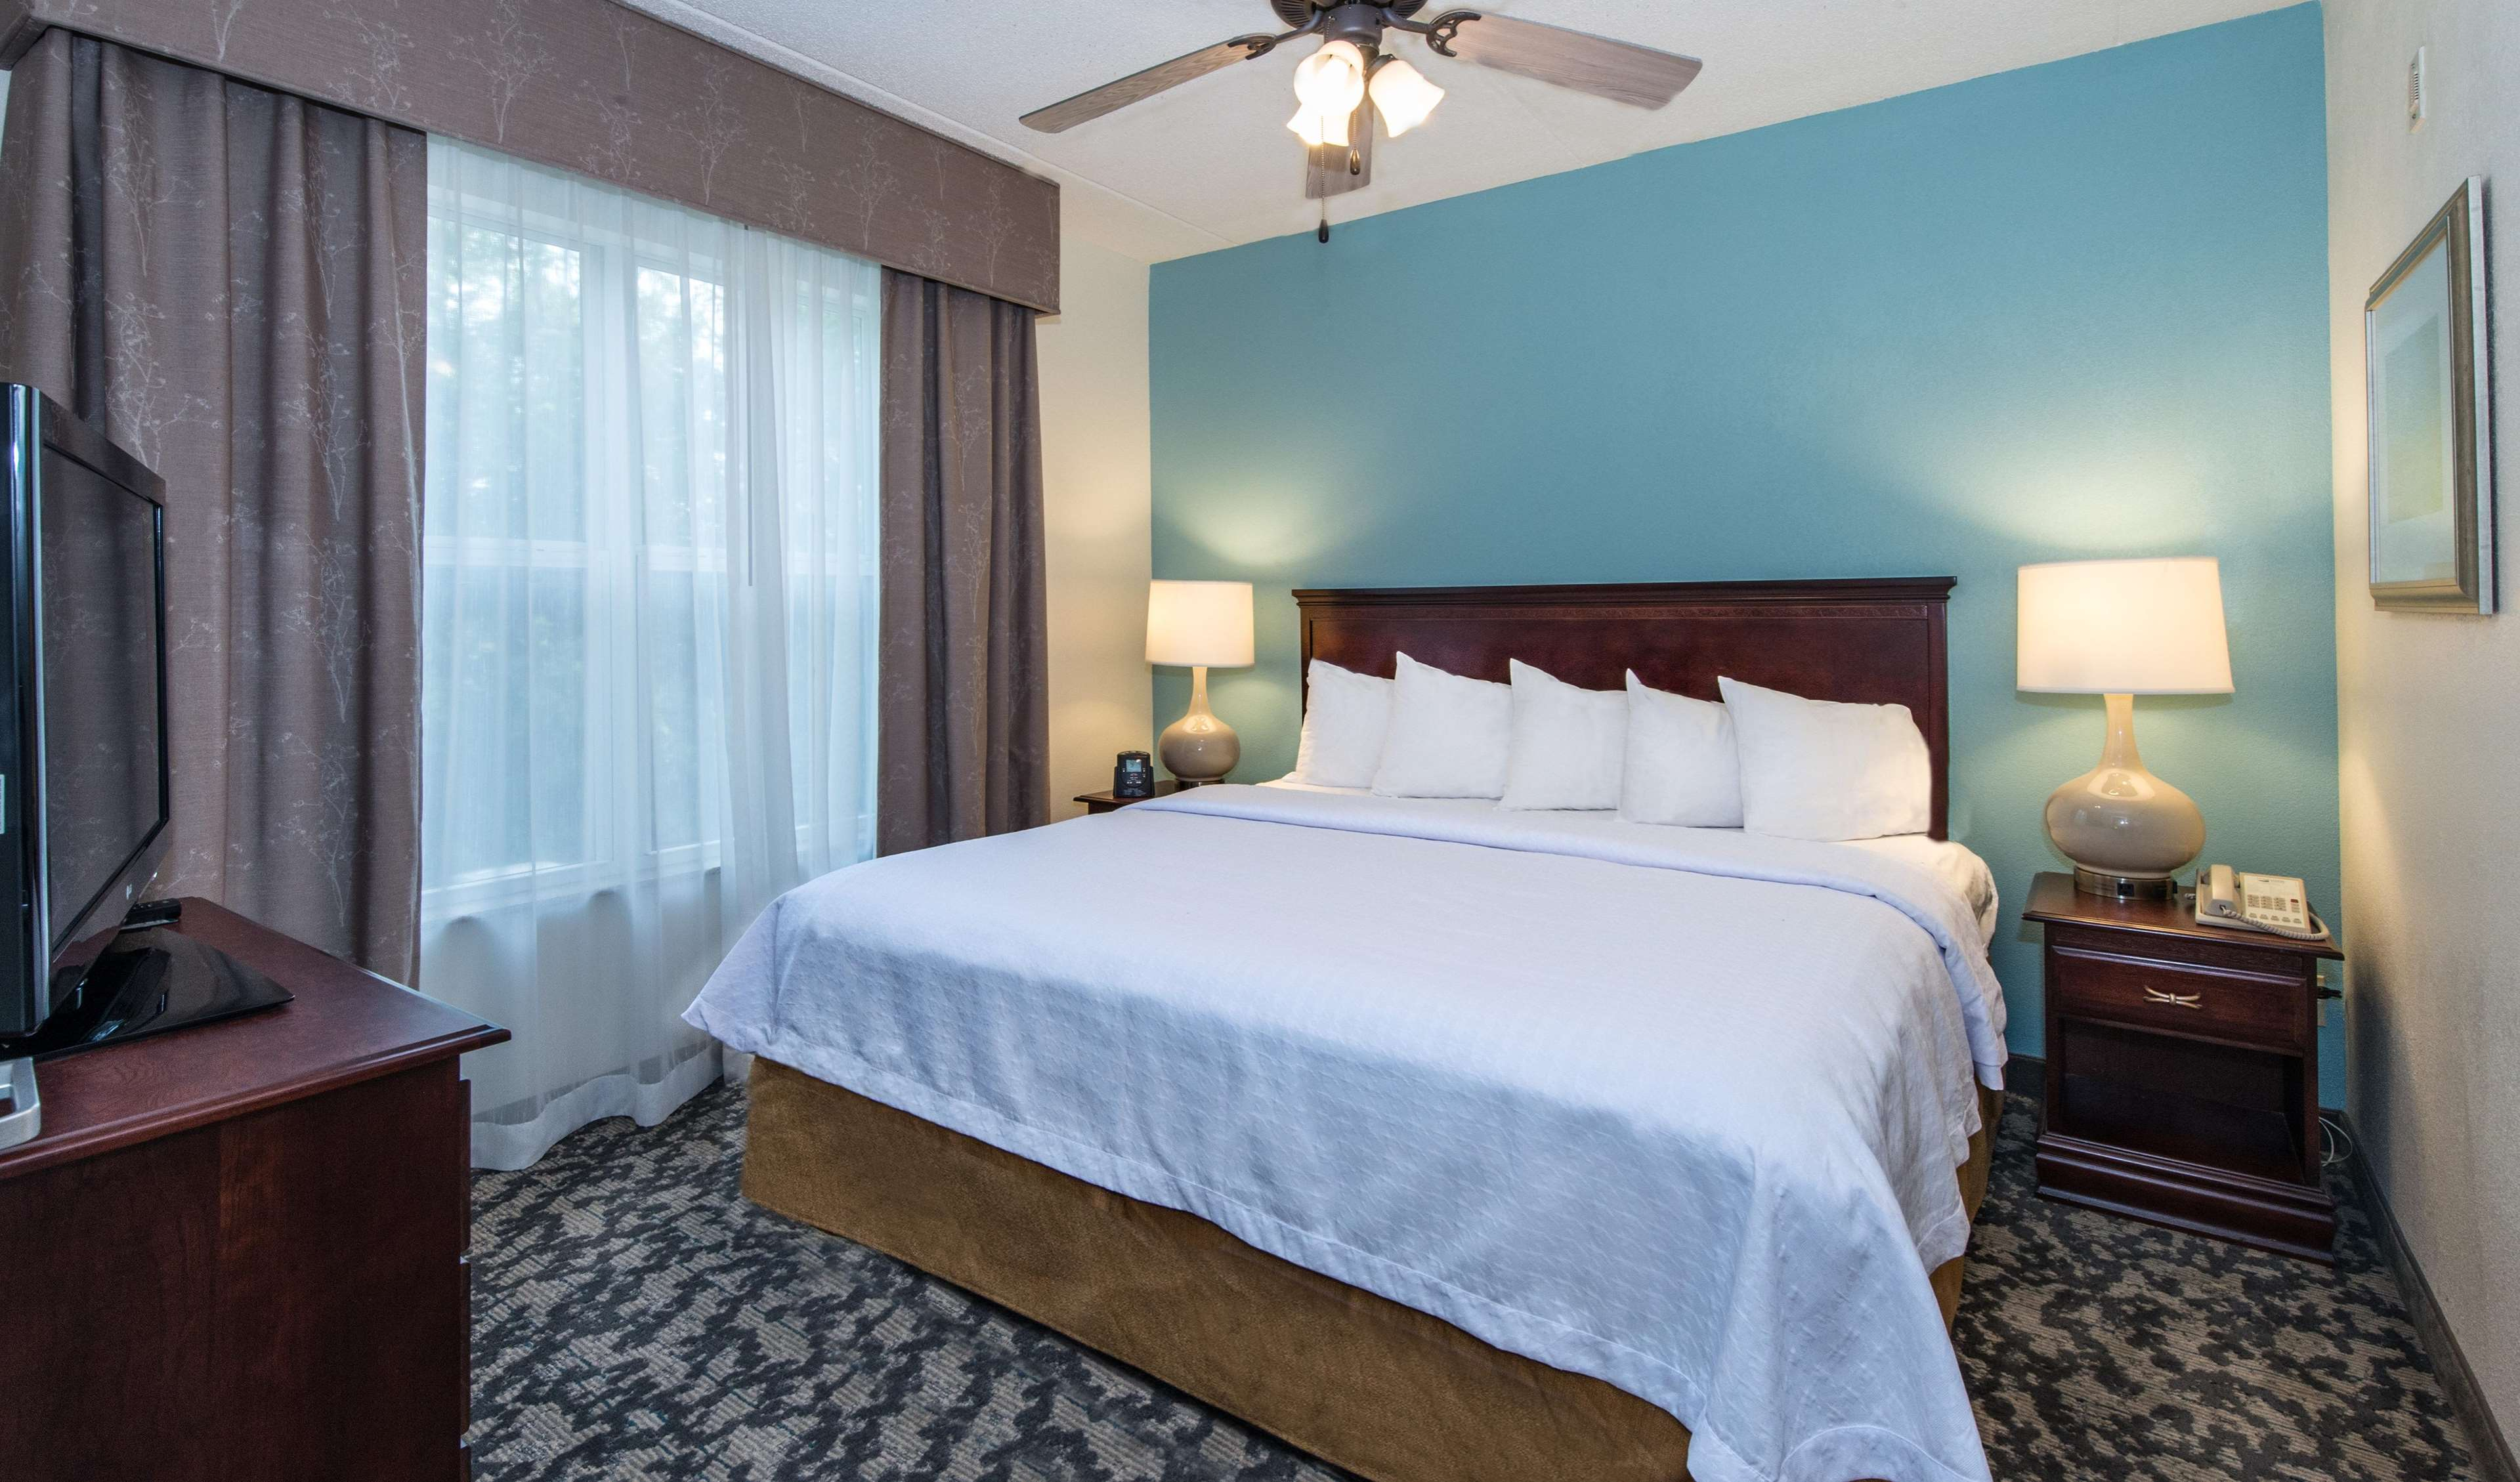 Homewood Suites by Hilton Montgomery image 20